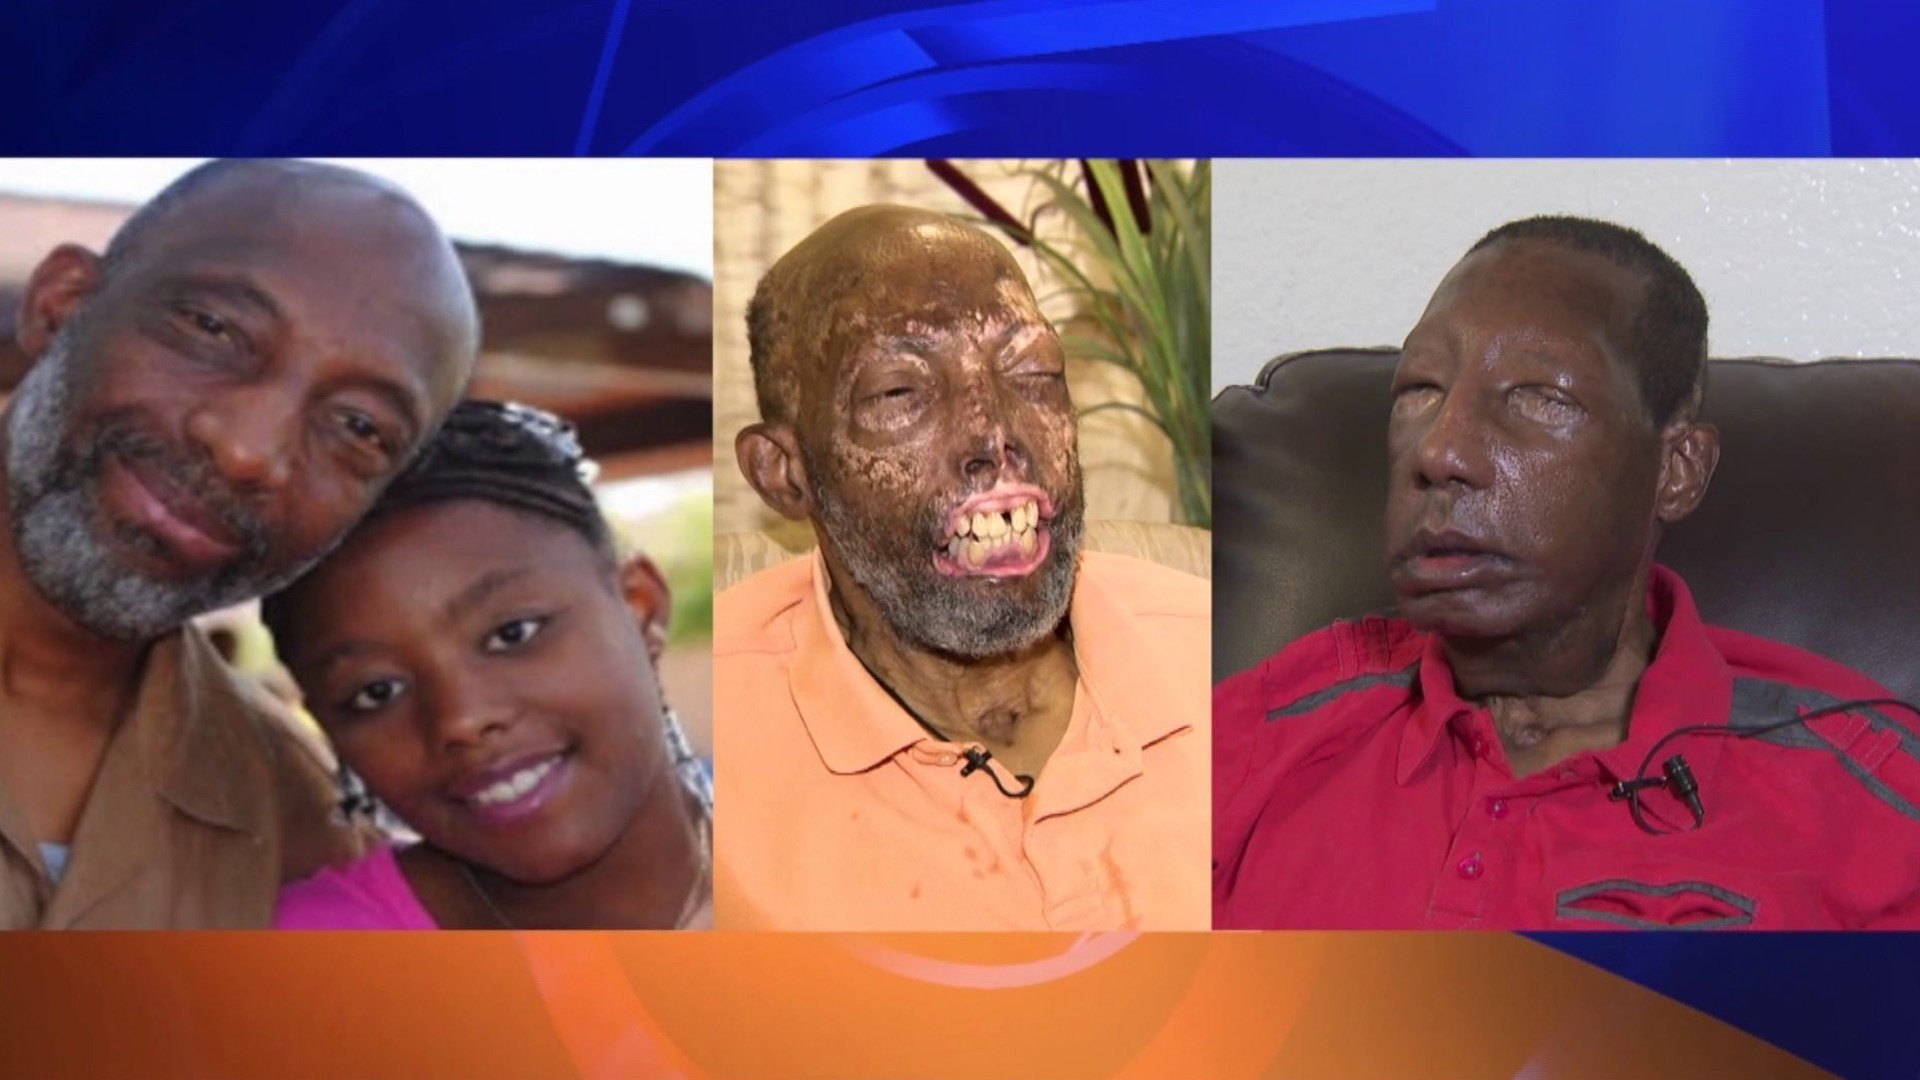 Robert Chelsea is seen in photos before and after a crash that caused extensive burns to his face, and after a facial transplant. (Credit: KTLA)